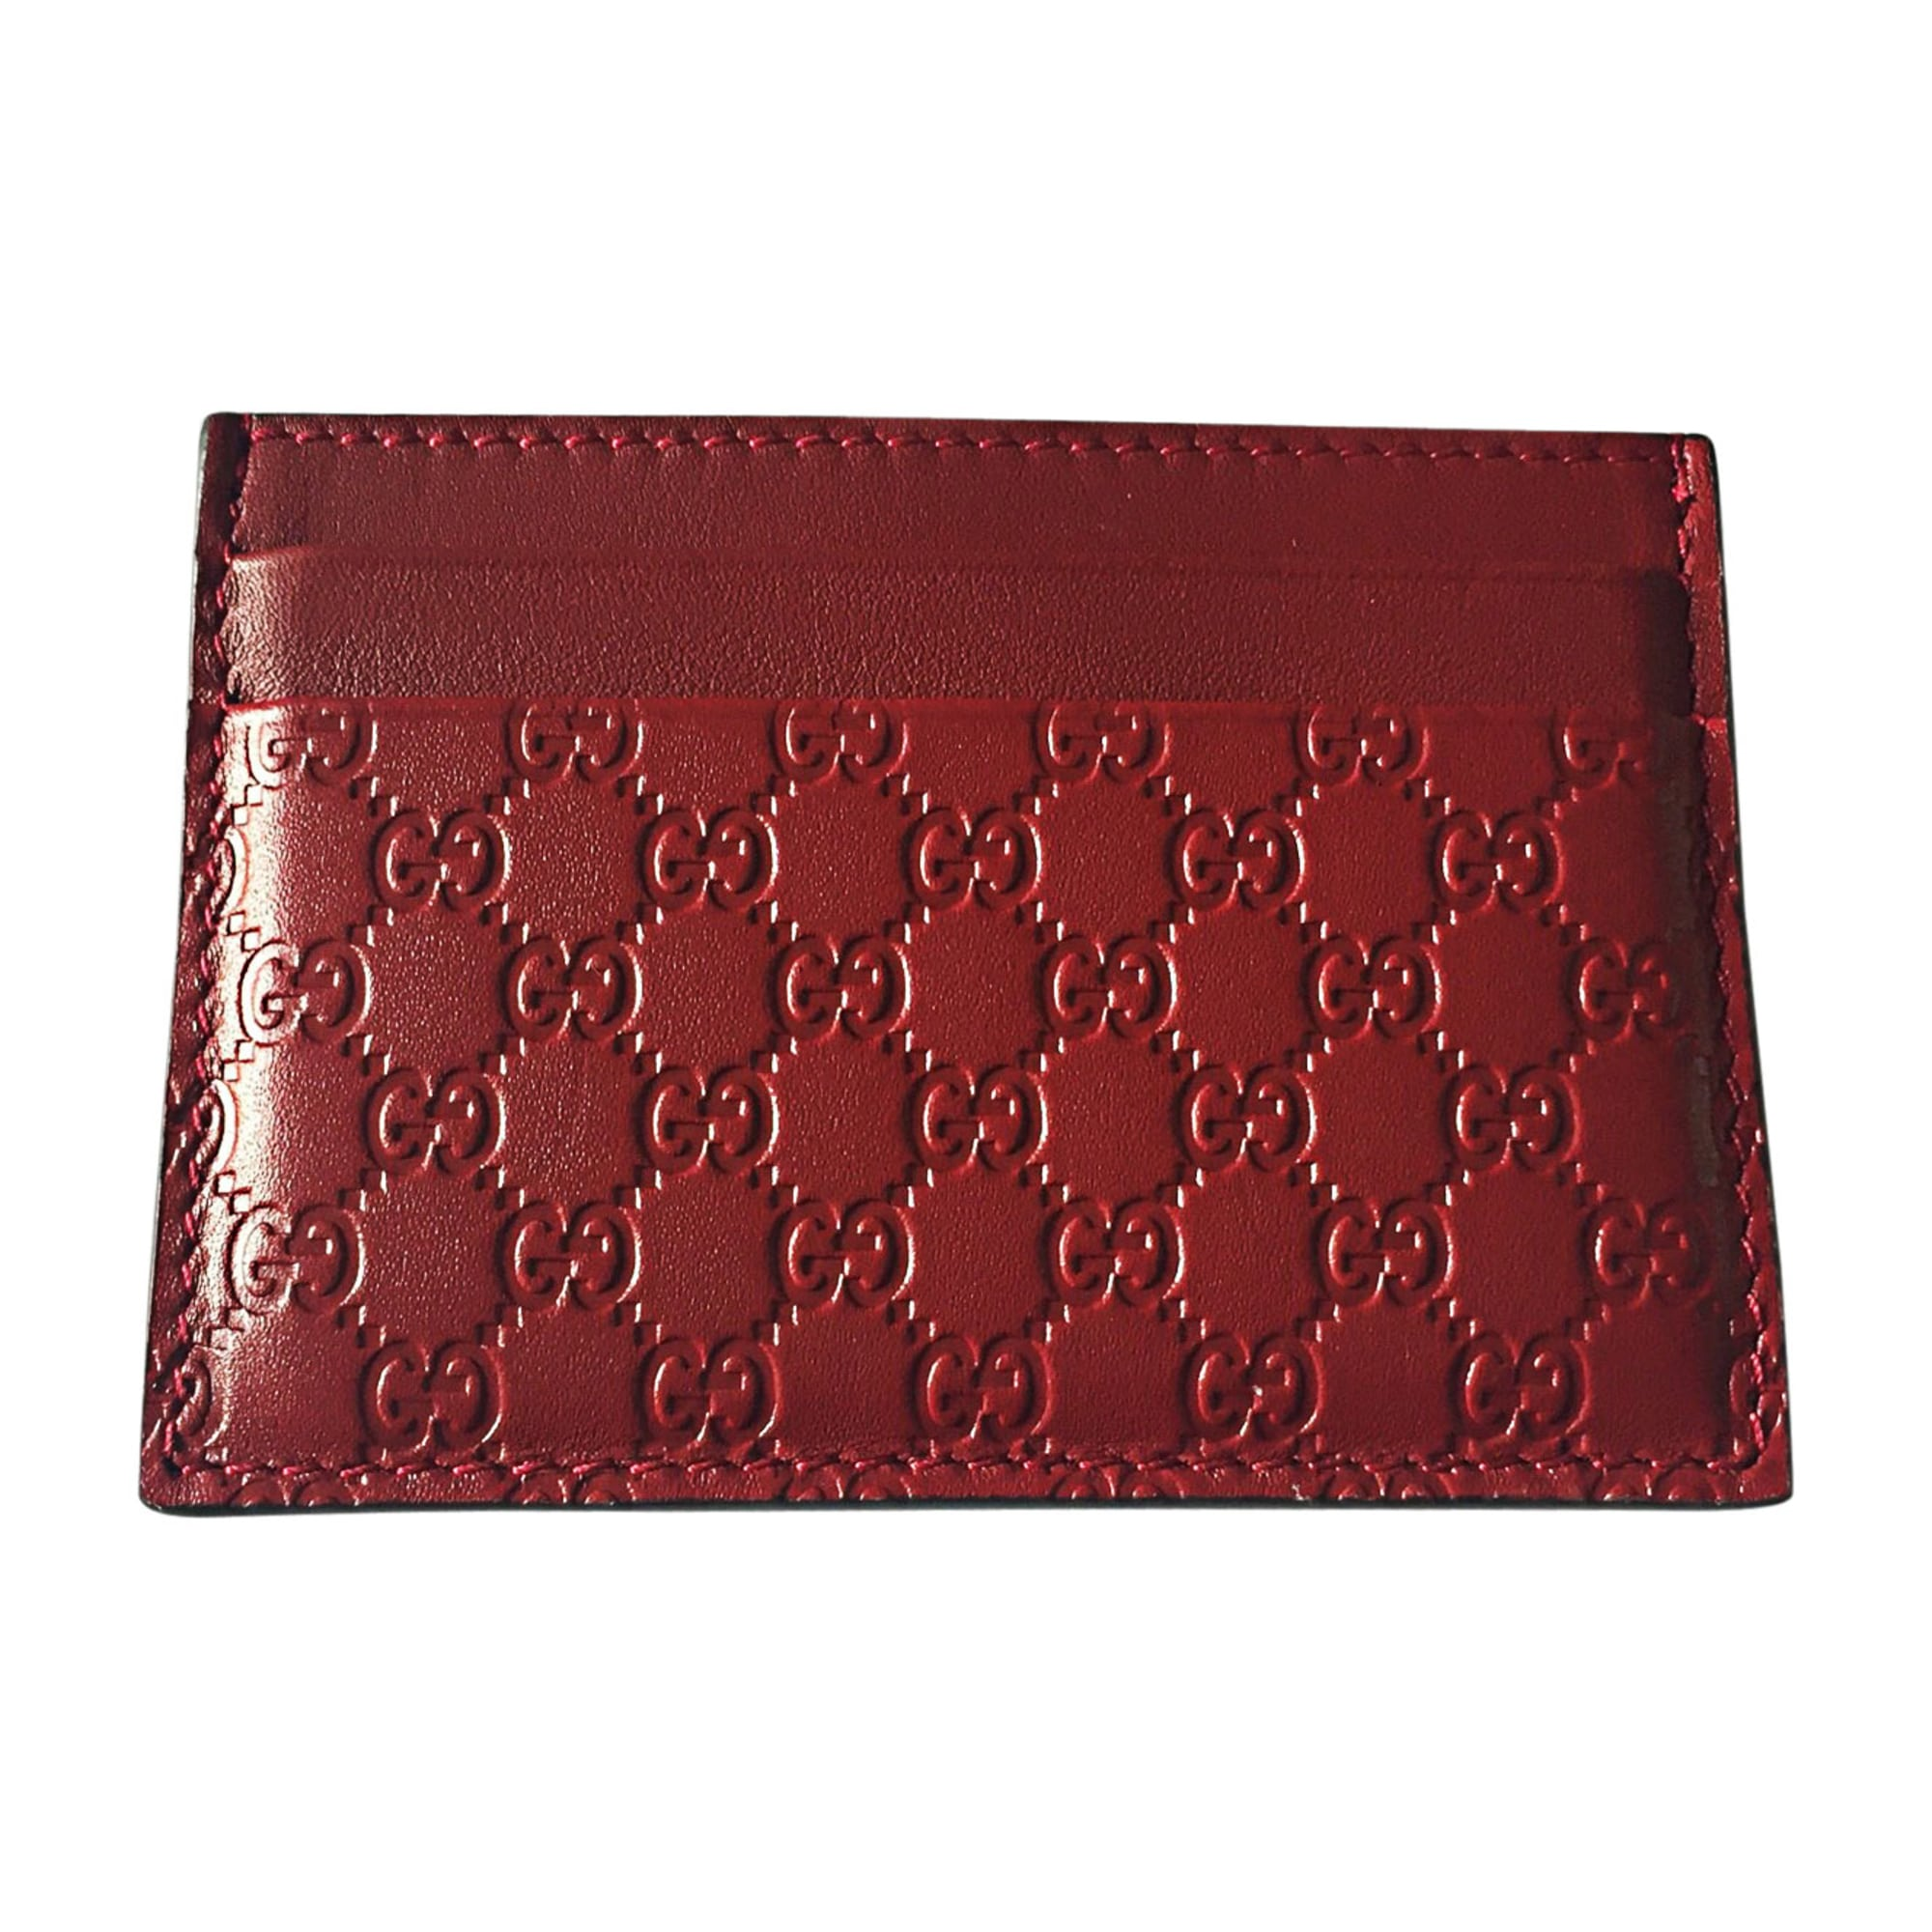 Wallet GUCCI Red, burgundy